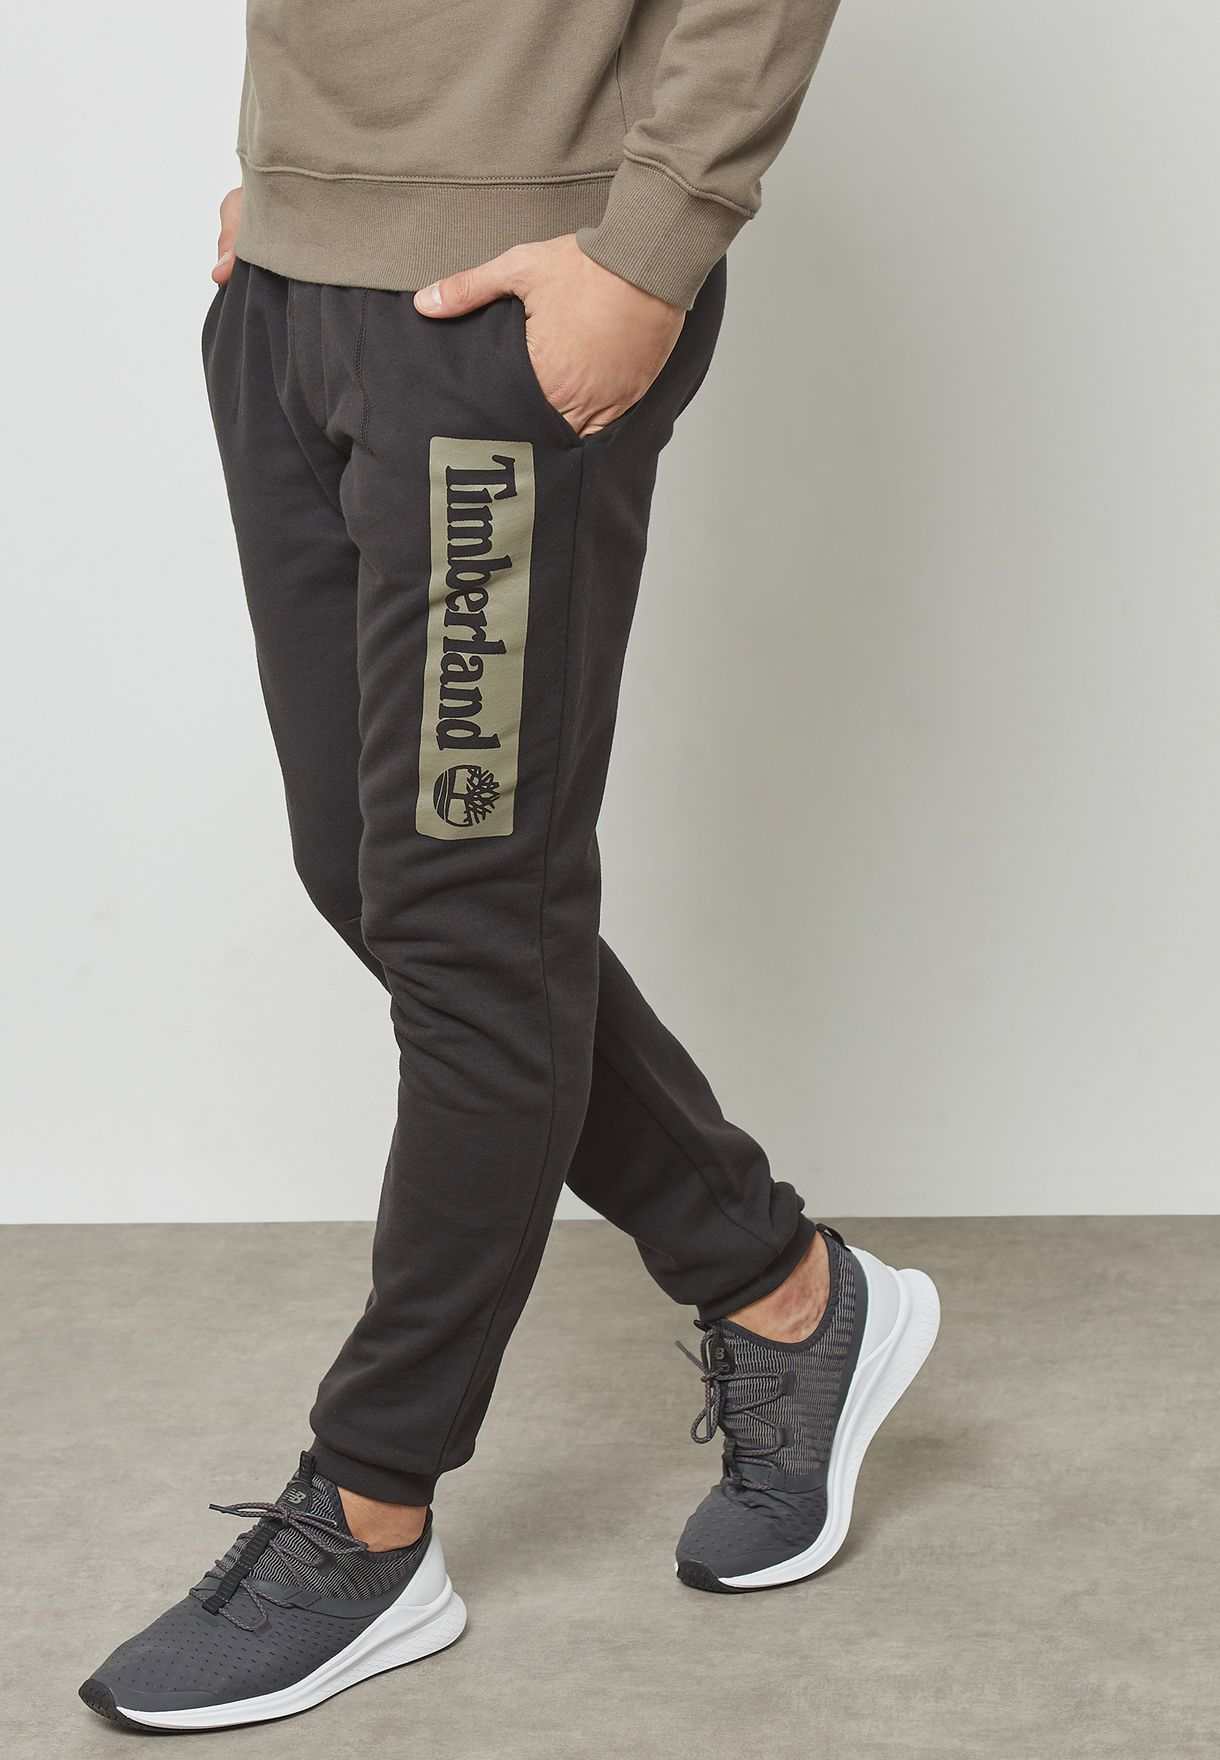 307518fb779 Shop Timberland black Logo Sweatpants A1MBX-001 for Men in Kuwait ...